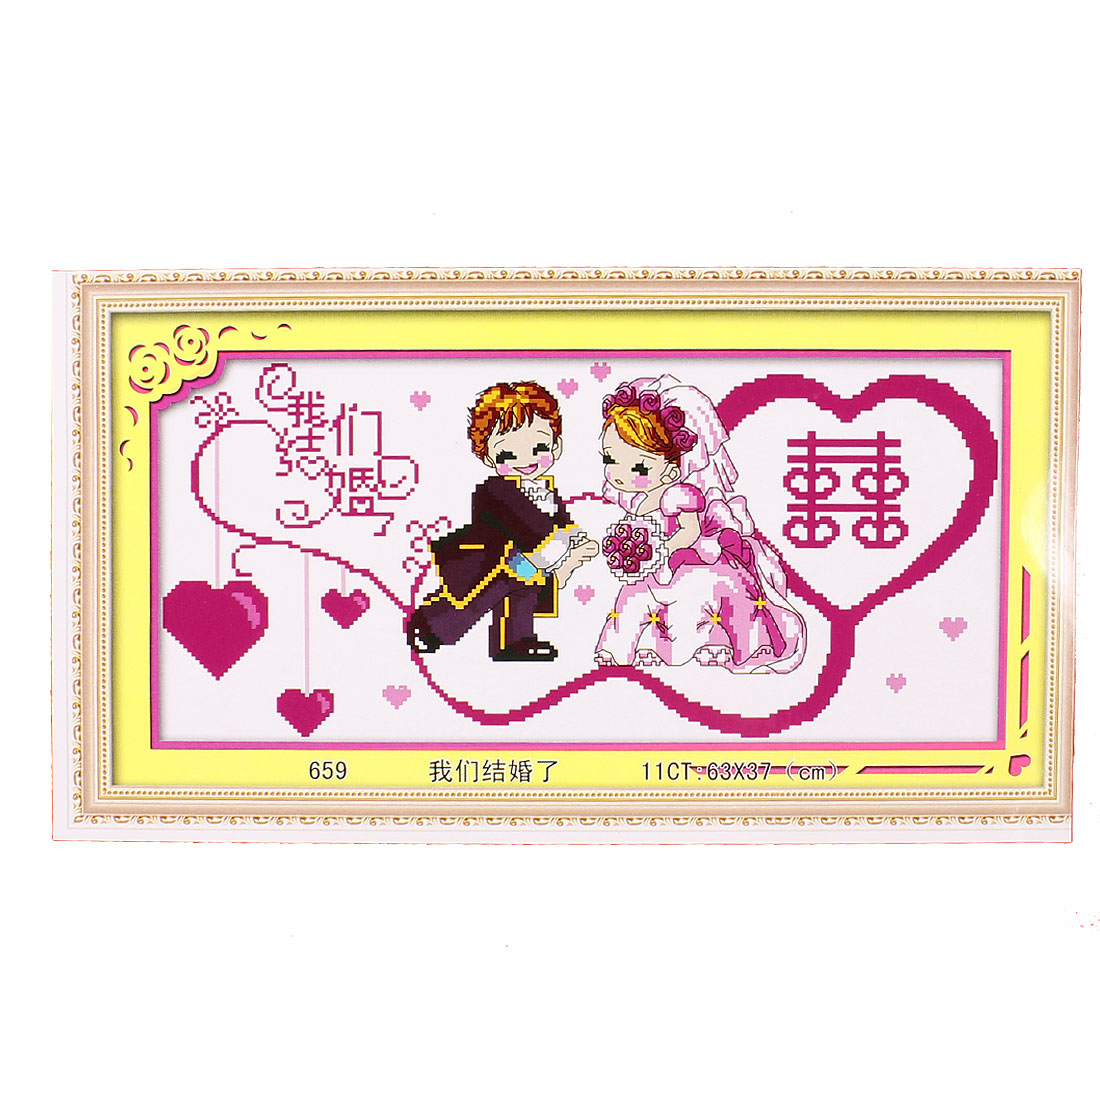 Wedding Bride Groom Printed Stamped Cross Stitch Counted Gift Handmade